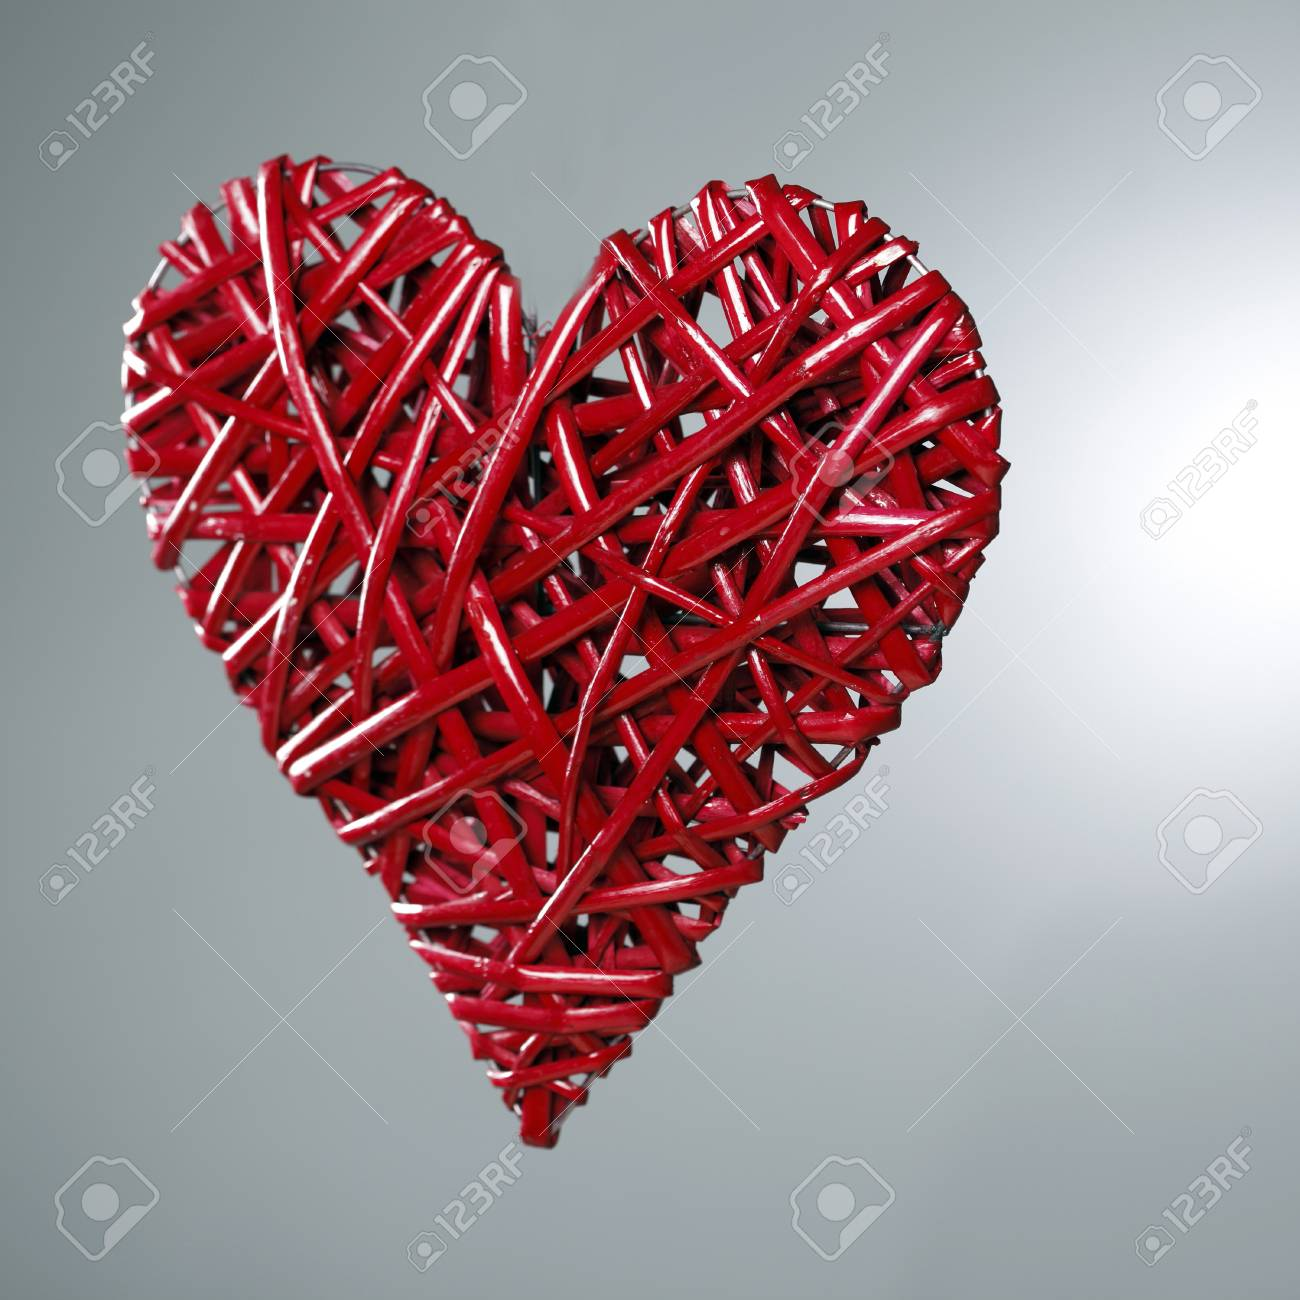 Hand Made Red Heart Symbol Of Love Stock Photo Picture And